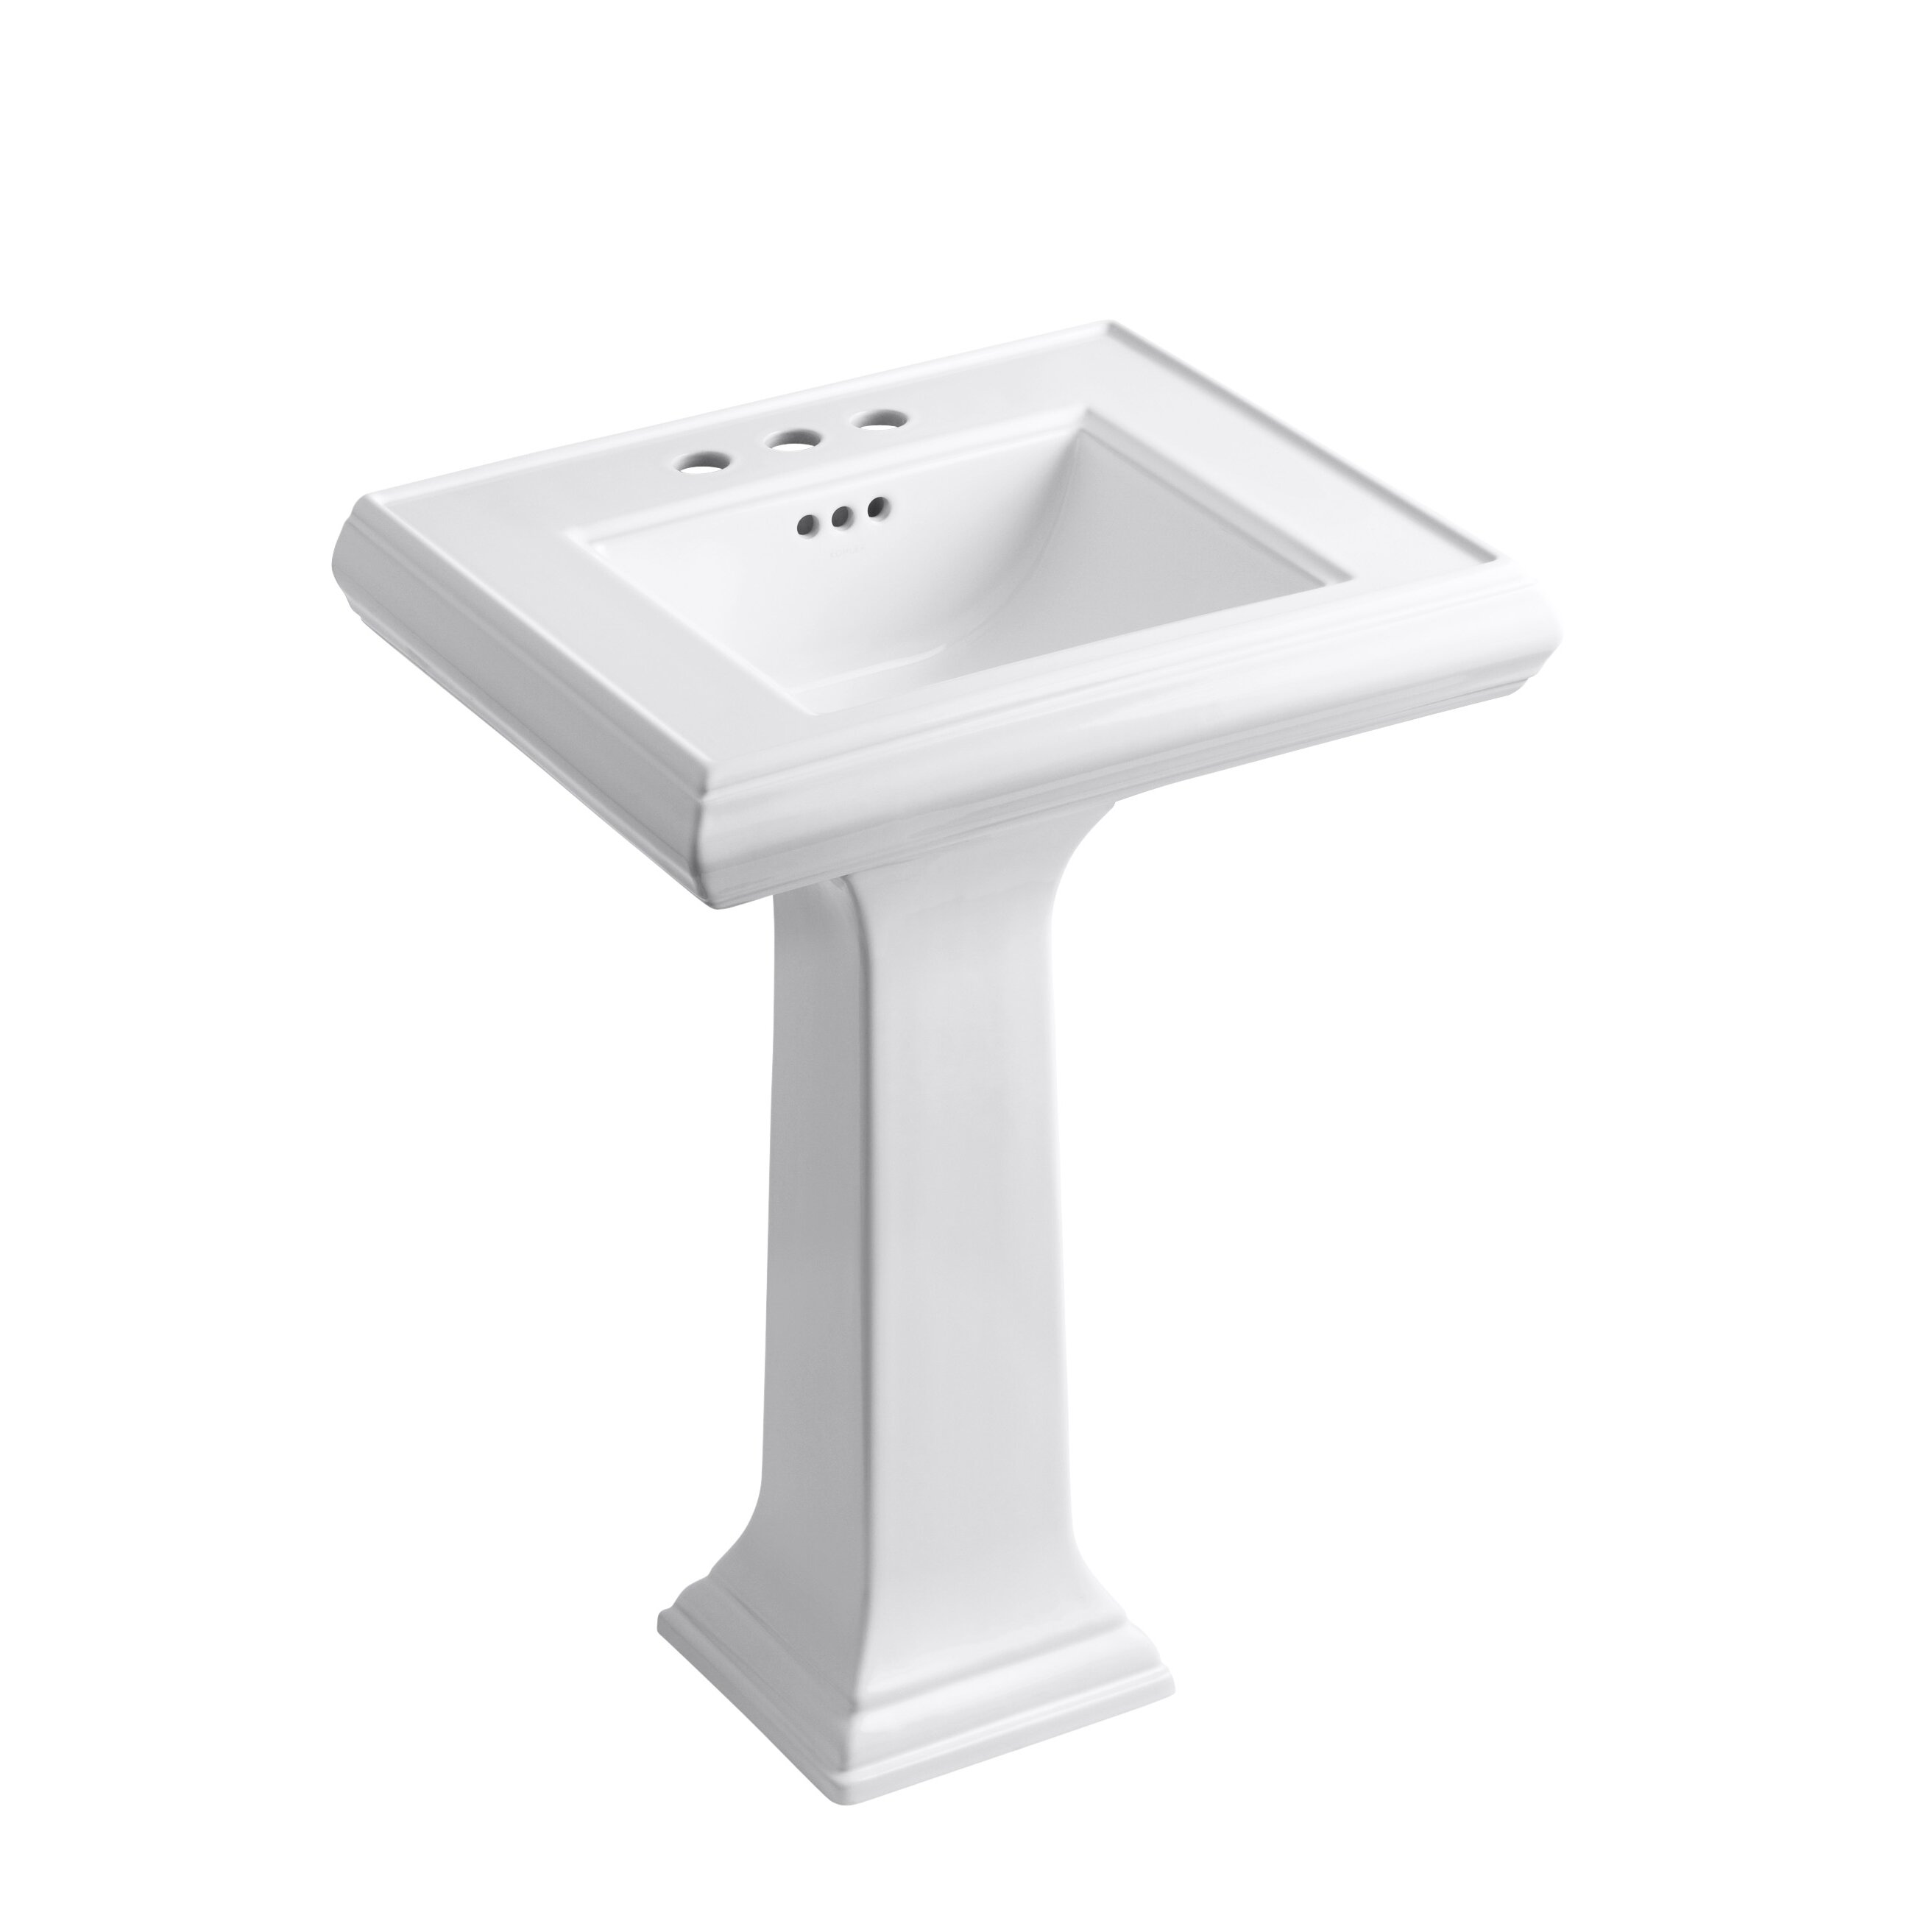 Kohler Memoirs Classic 24 Pedestal Bathroom Sink Reviews Wayfair